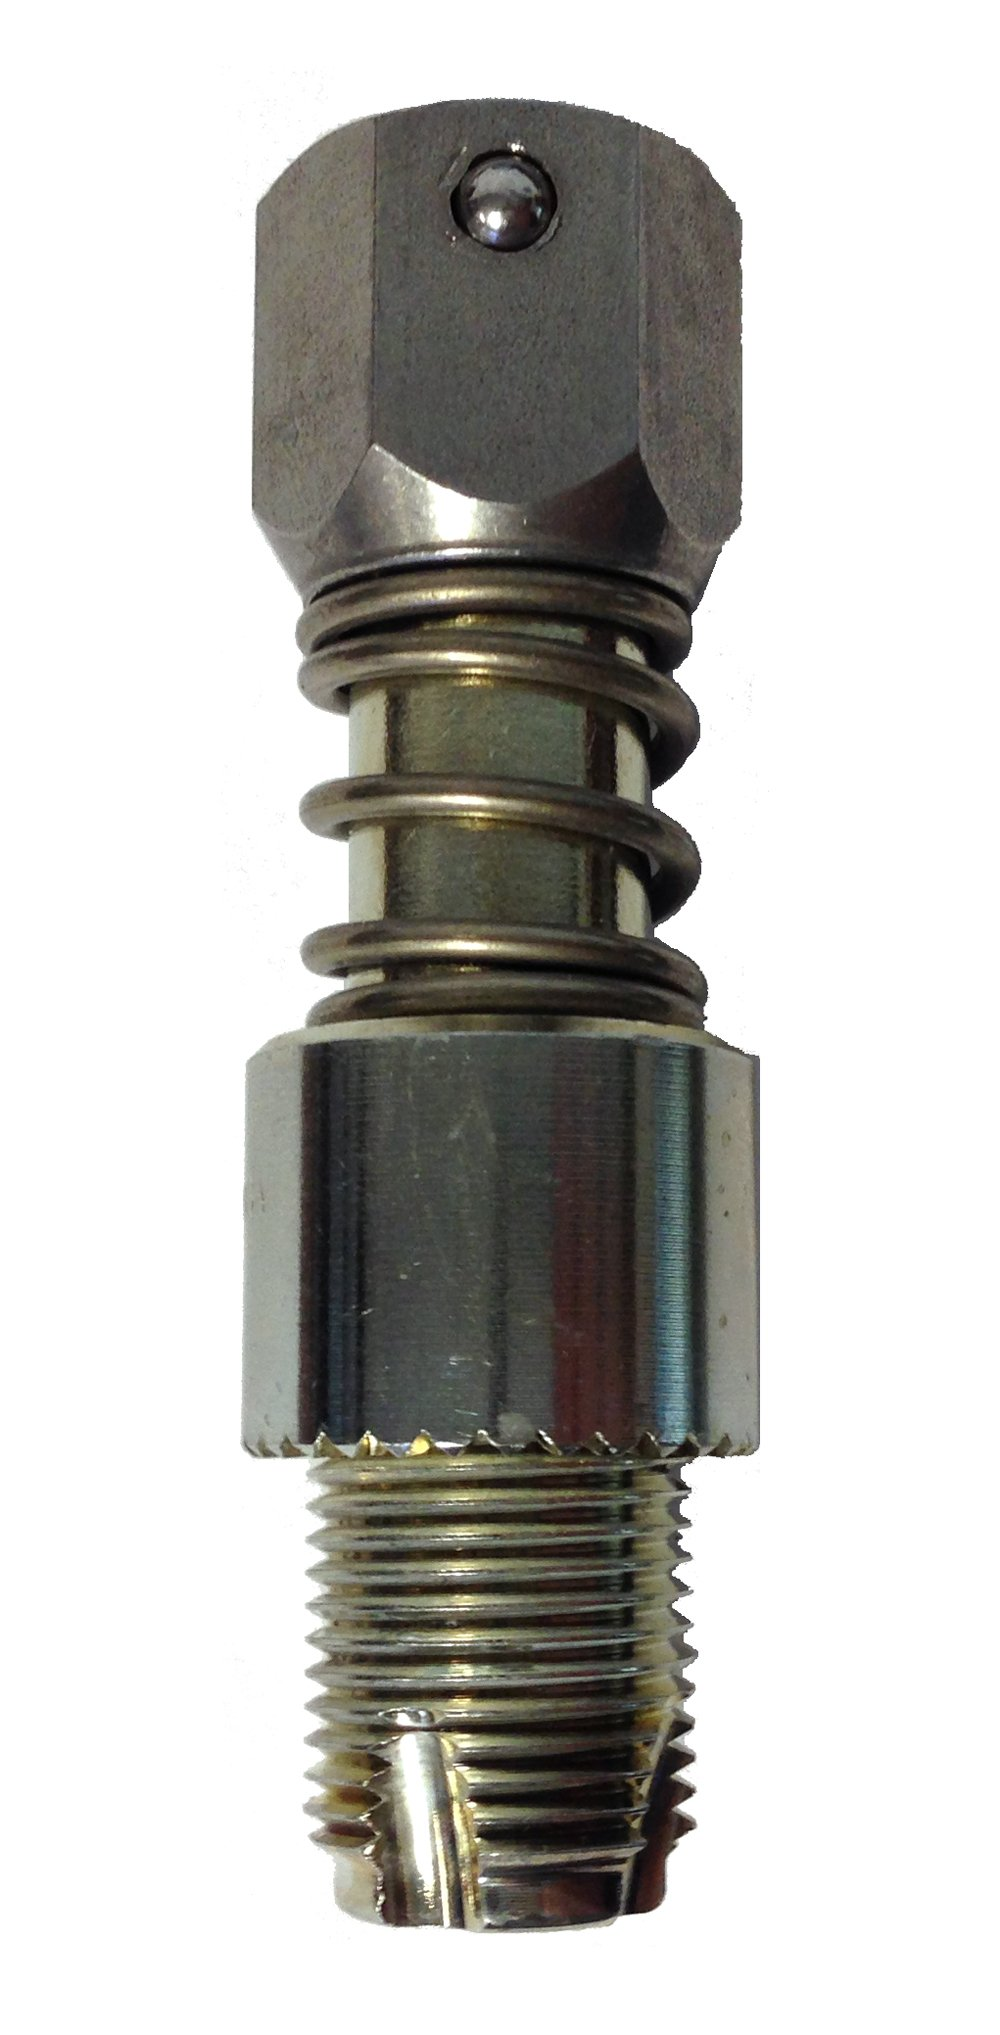 Spark Plug Hole Conditioning Tool - 18mm, Long Reach, Non-Tapered Seat (21045-18L) by BG Service Company (Image #1)